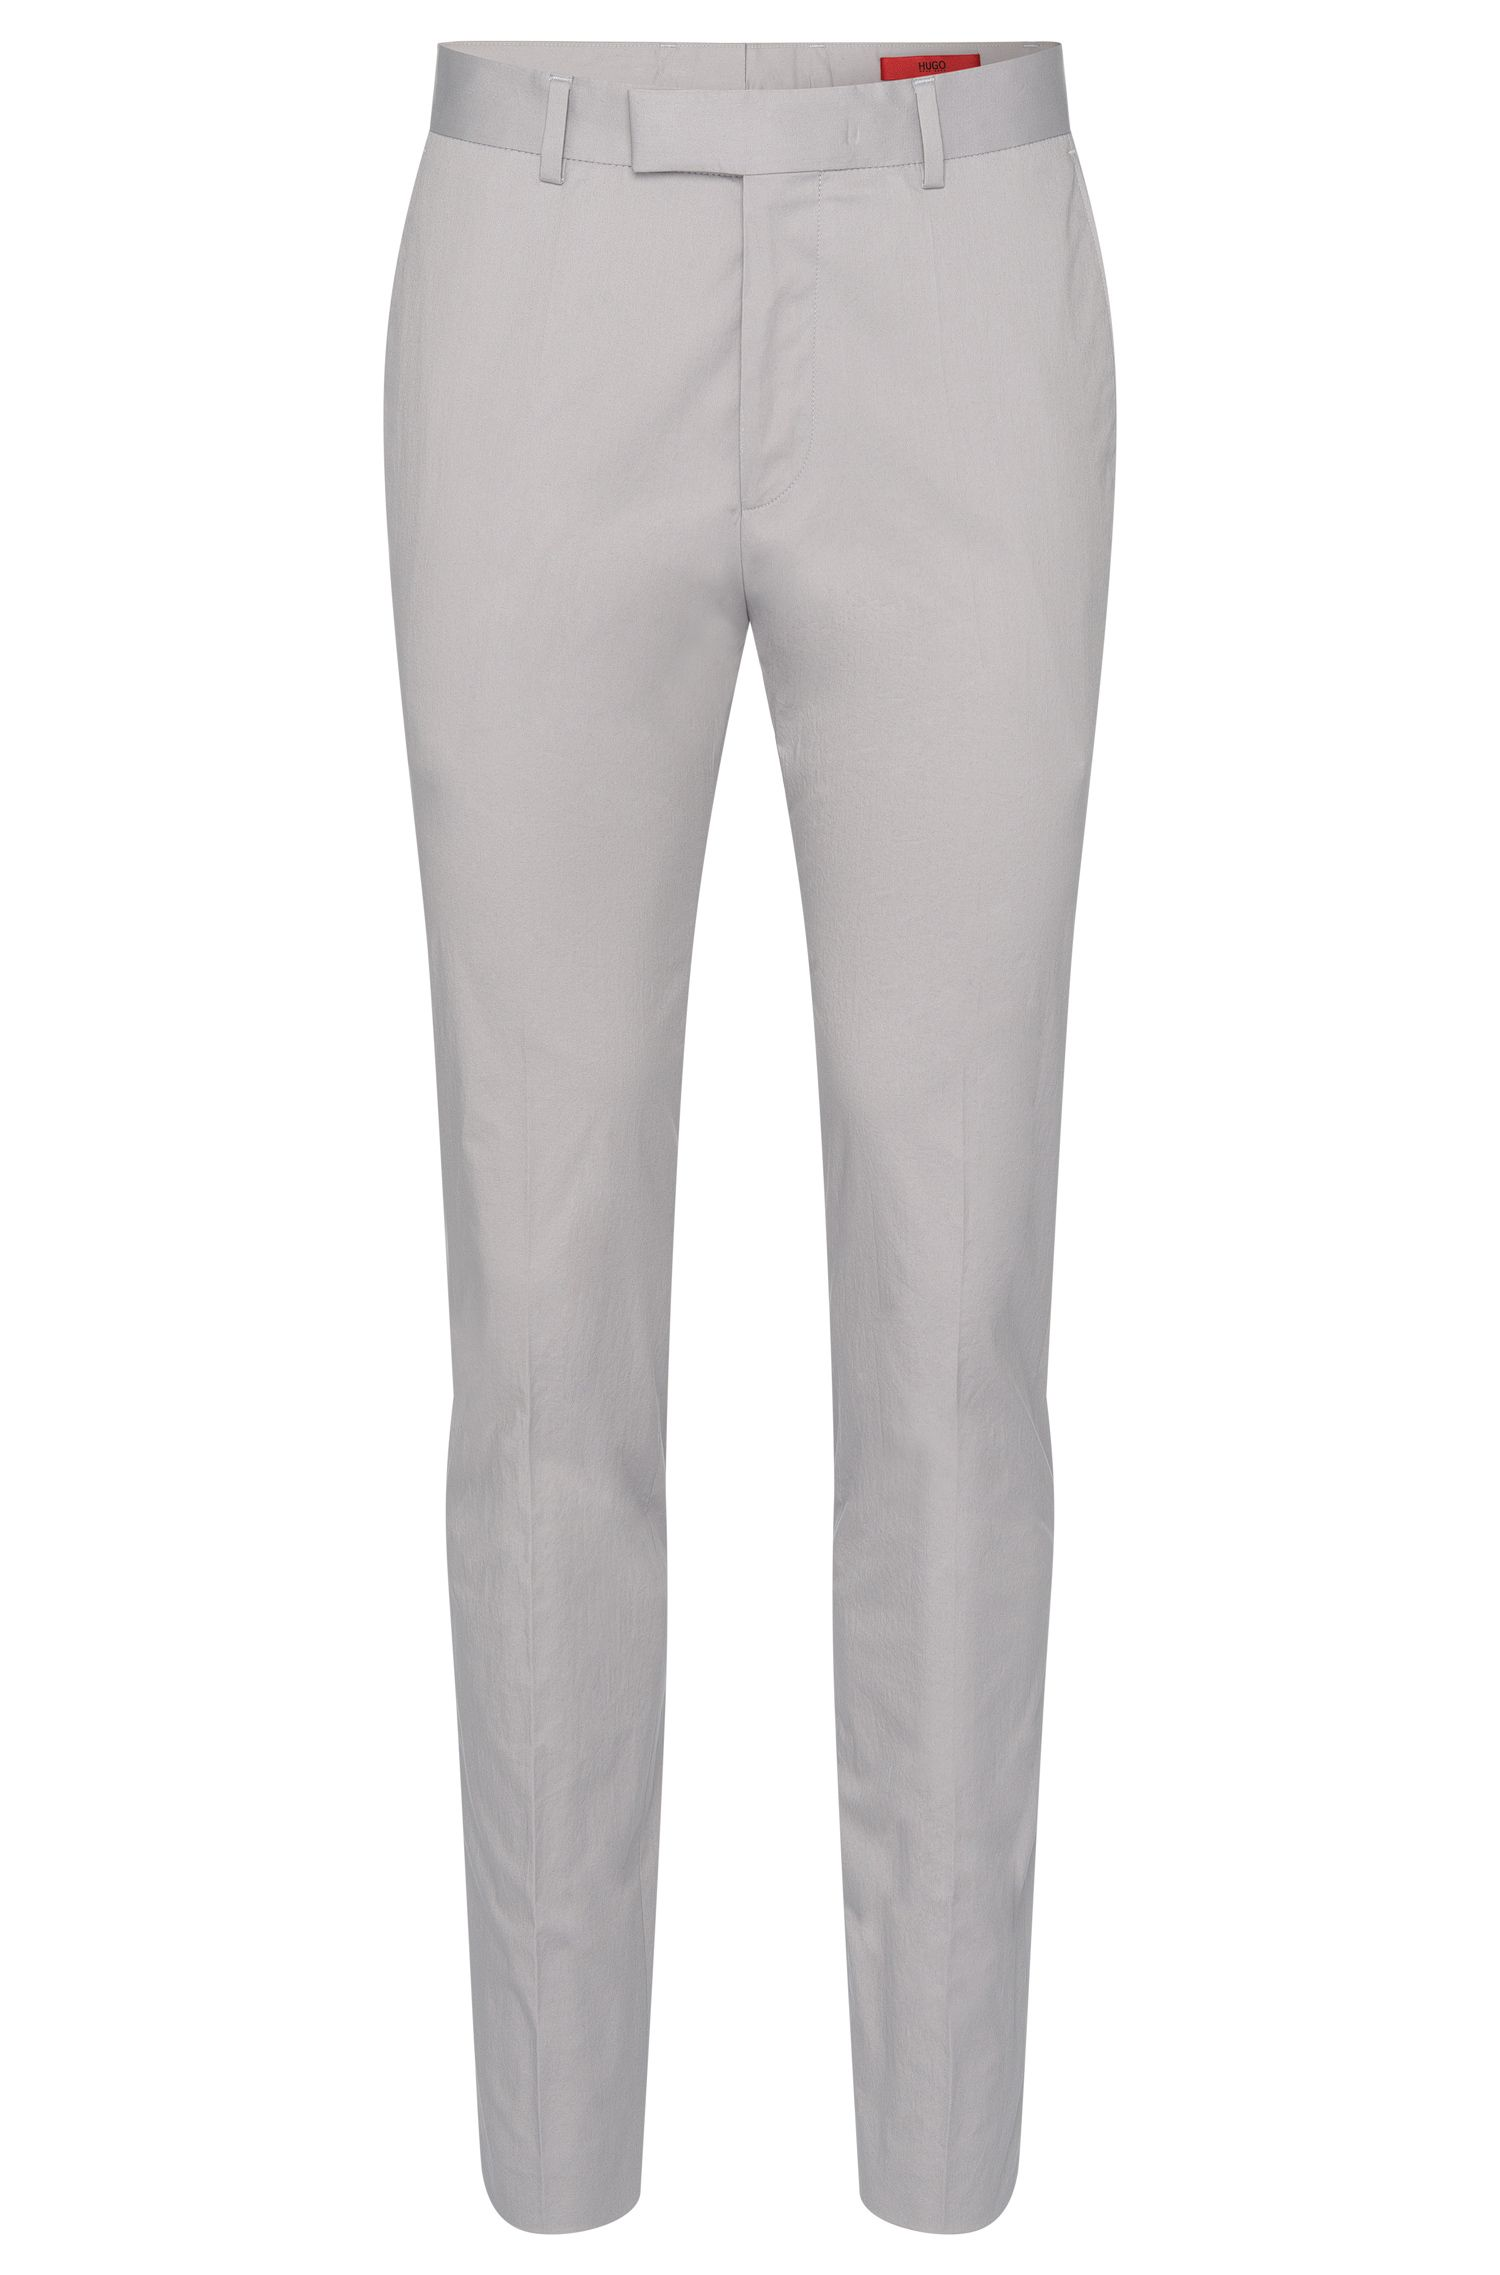 'Herion' | Extra Slim Fit,  Stretch Cotton Pants